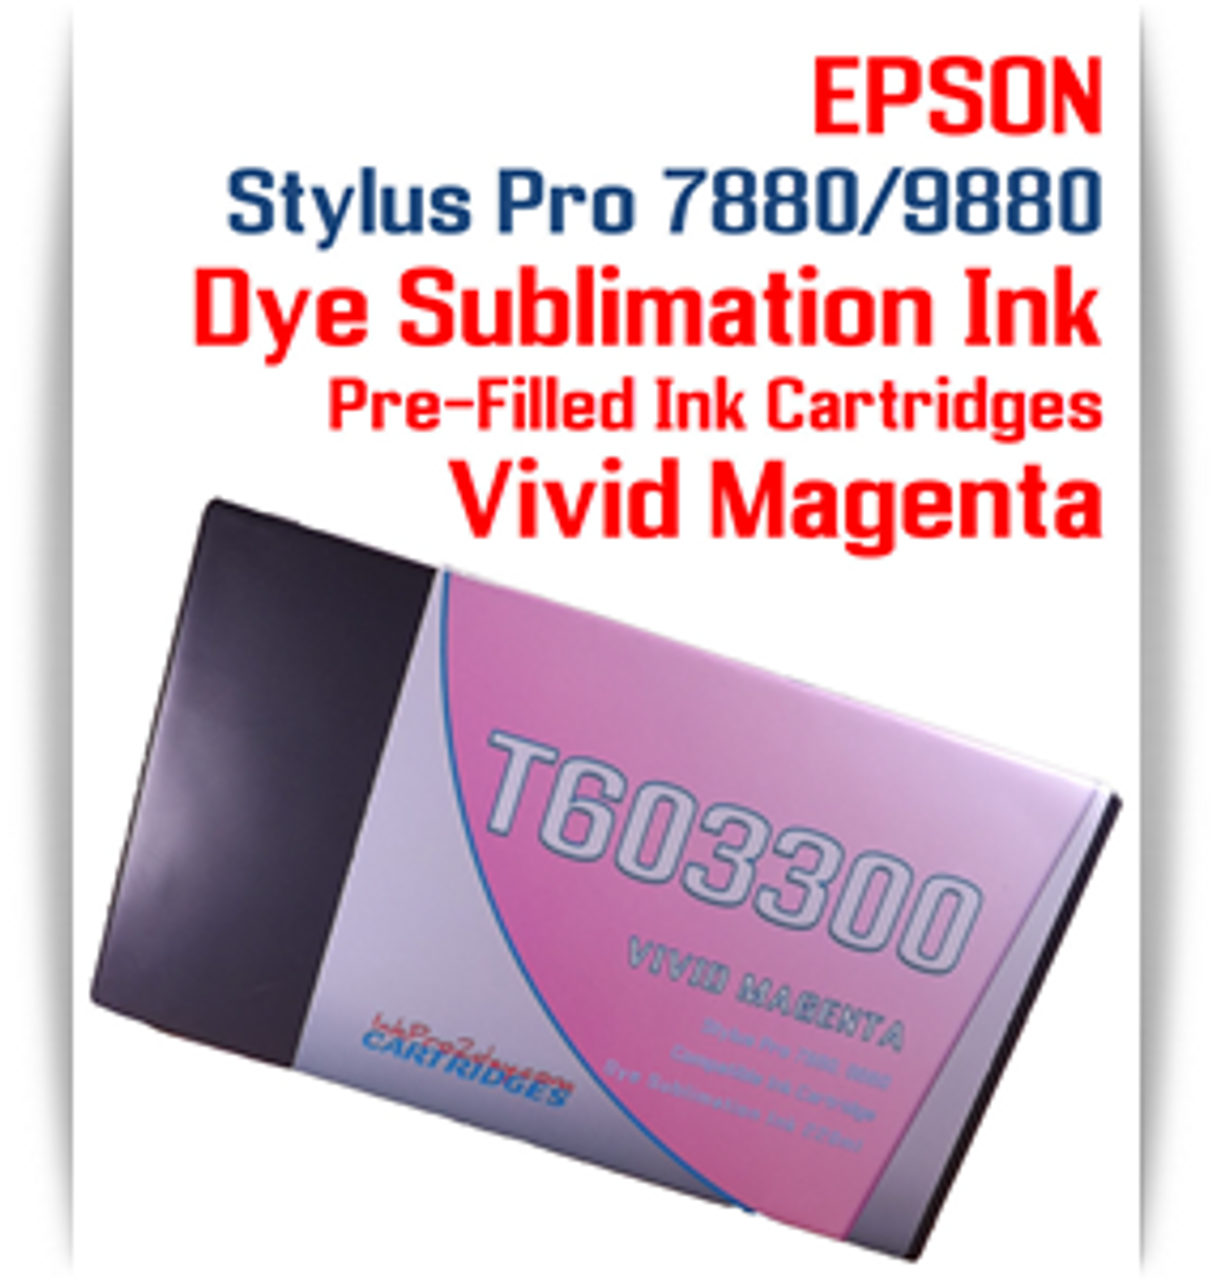 Vivid Magenta Epson Stylus Pro 7880/9880 Pre-Filled with Dye Sublimation Ink Cartridge 220ml